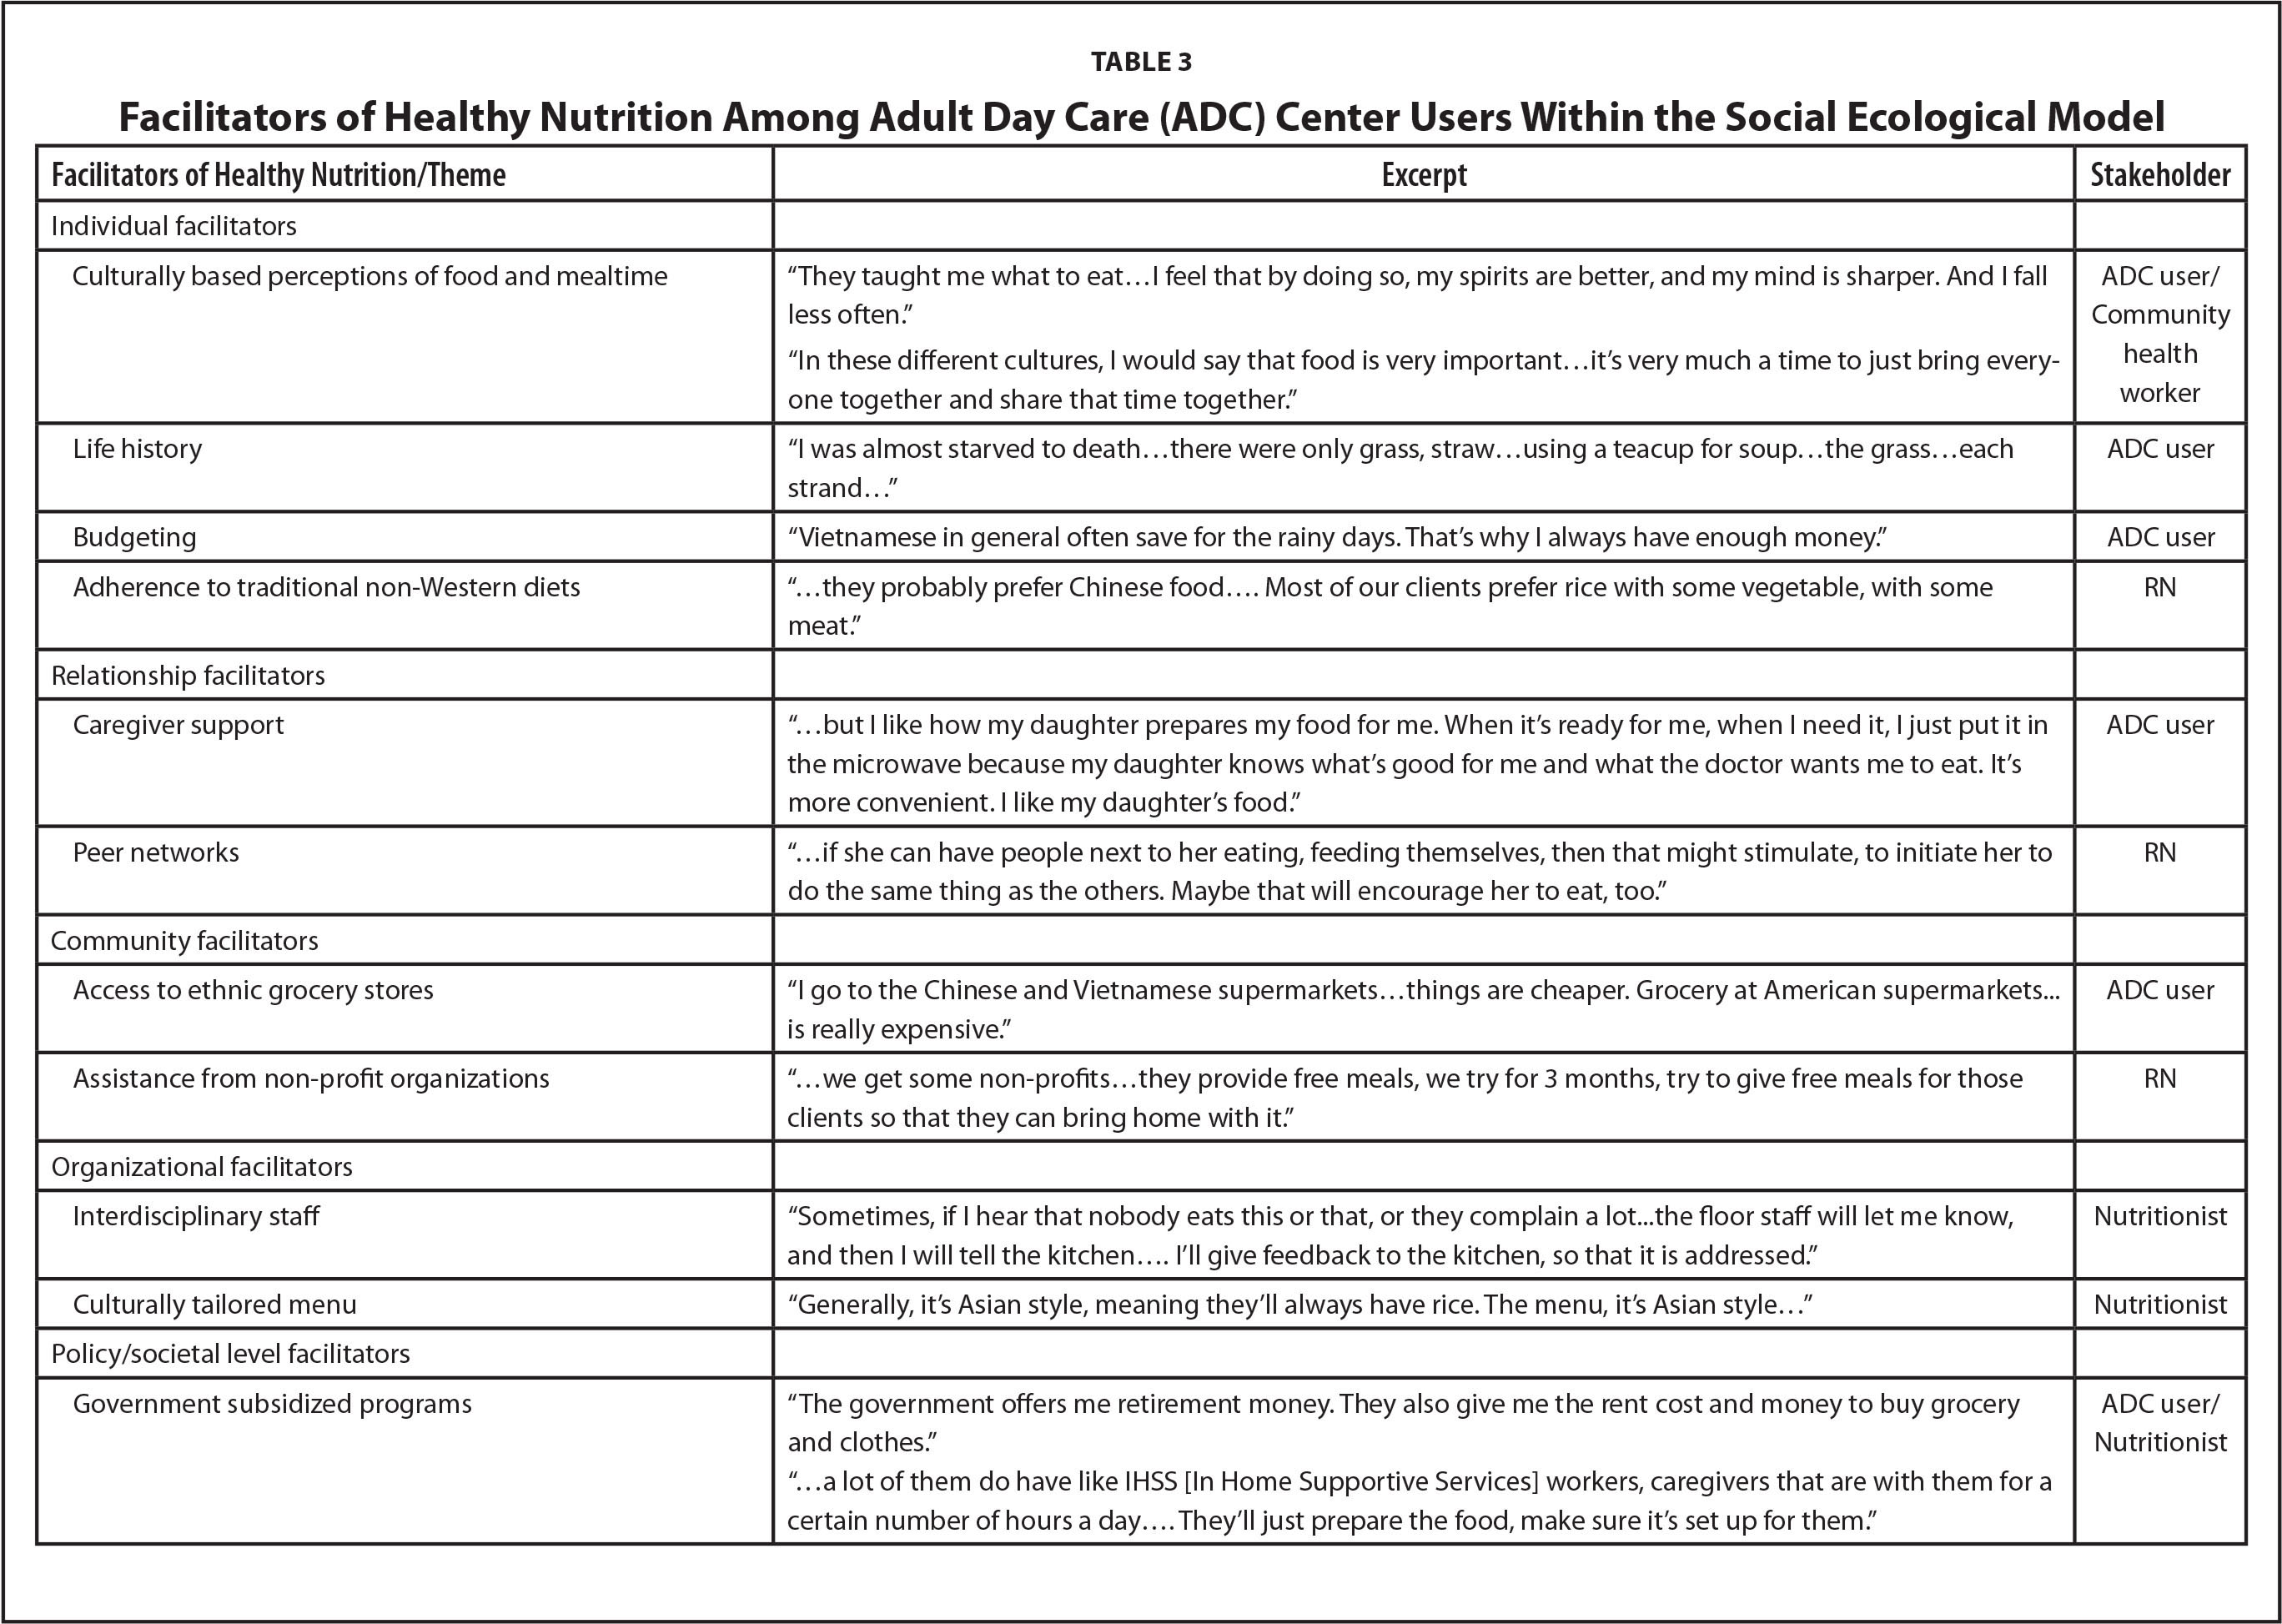 Facilitators of Healthy Nutrition Among Adult Day Care (ADC) Center Users Within the Social Ecological Model